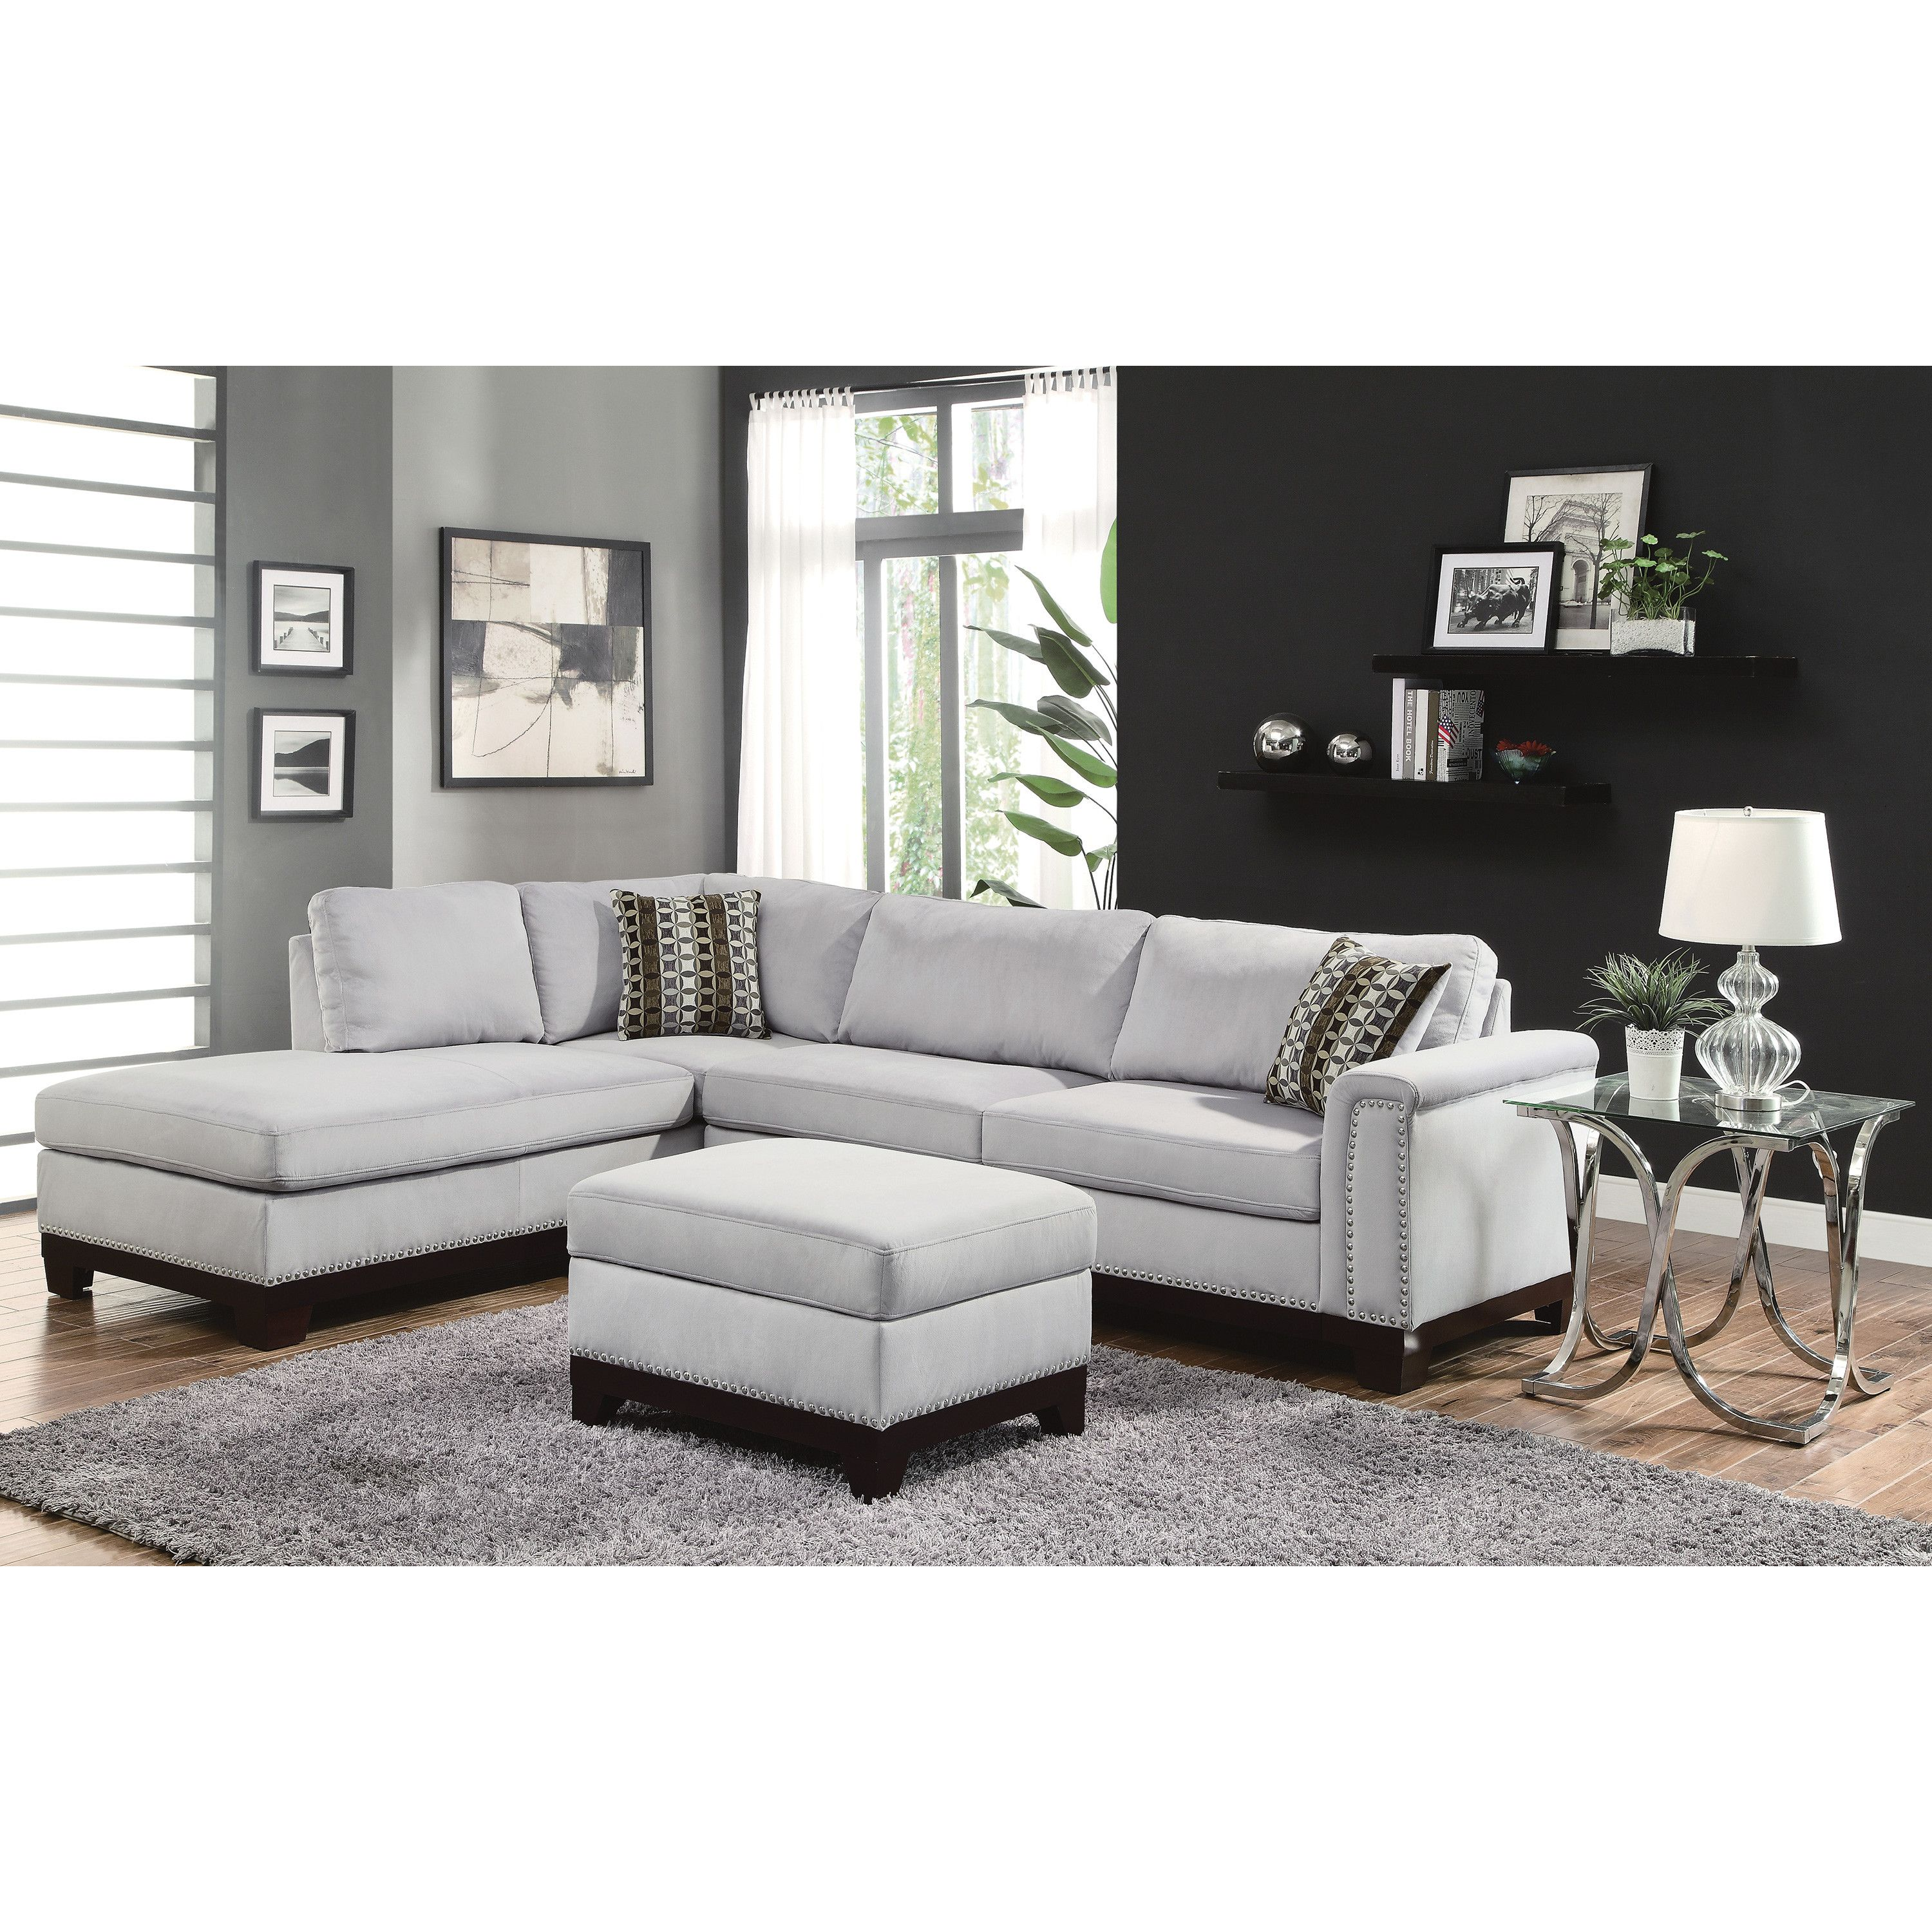 Darby Home Co Carson Reversible Chaise Sectional